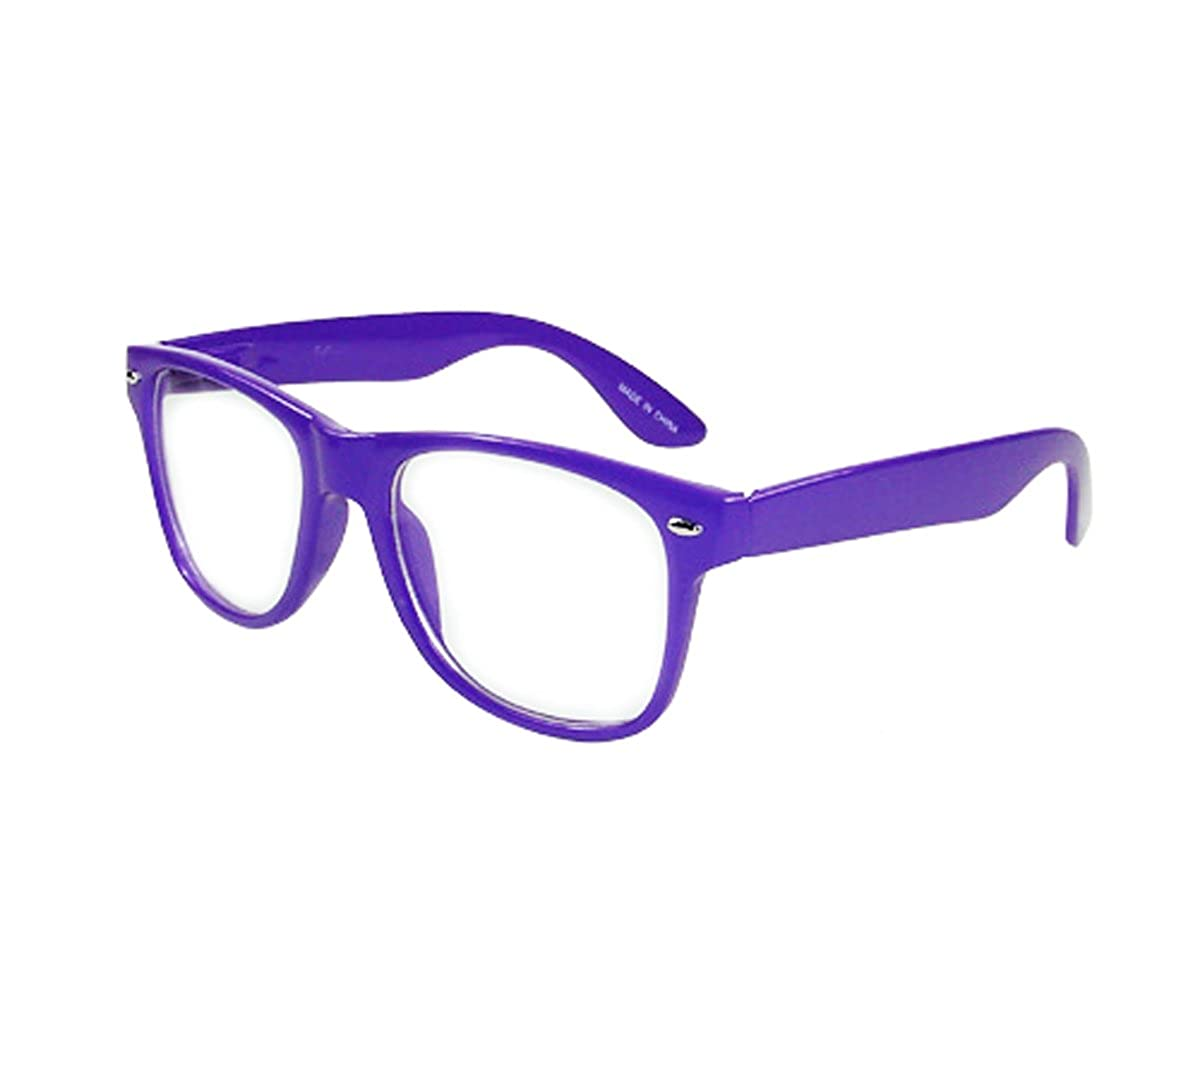 New Glossy Purple Retro Classic Nerd Glasses Clear Lens Optical Quality MJ-8841C-purple